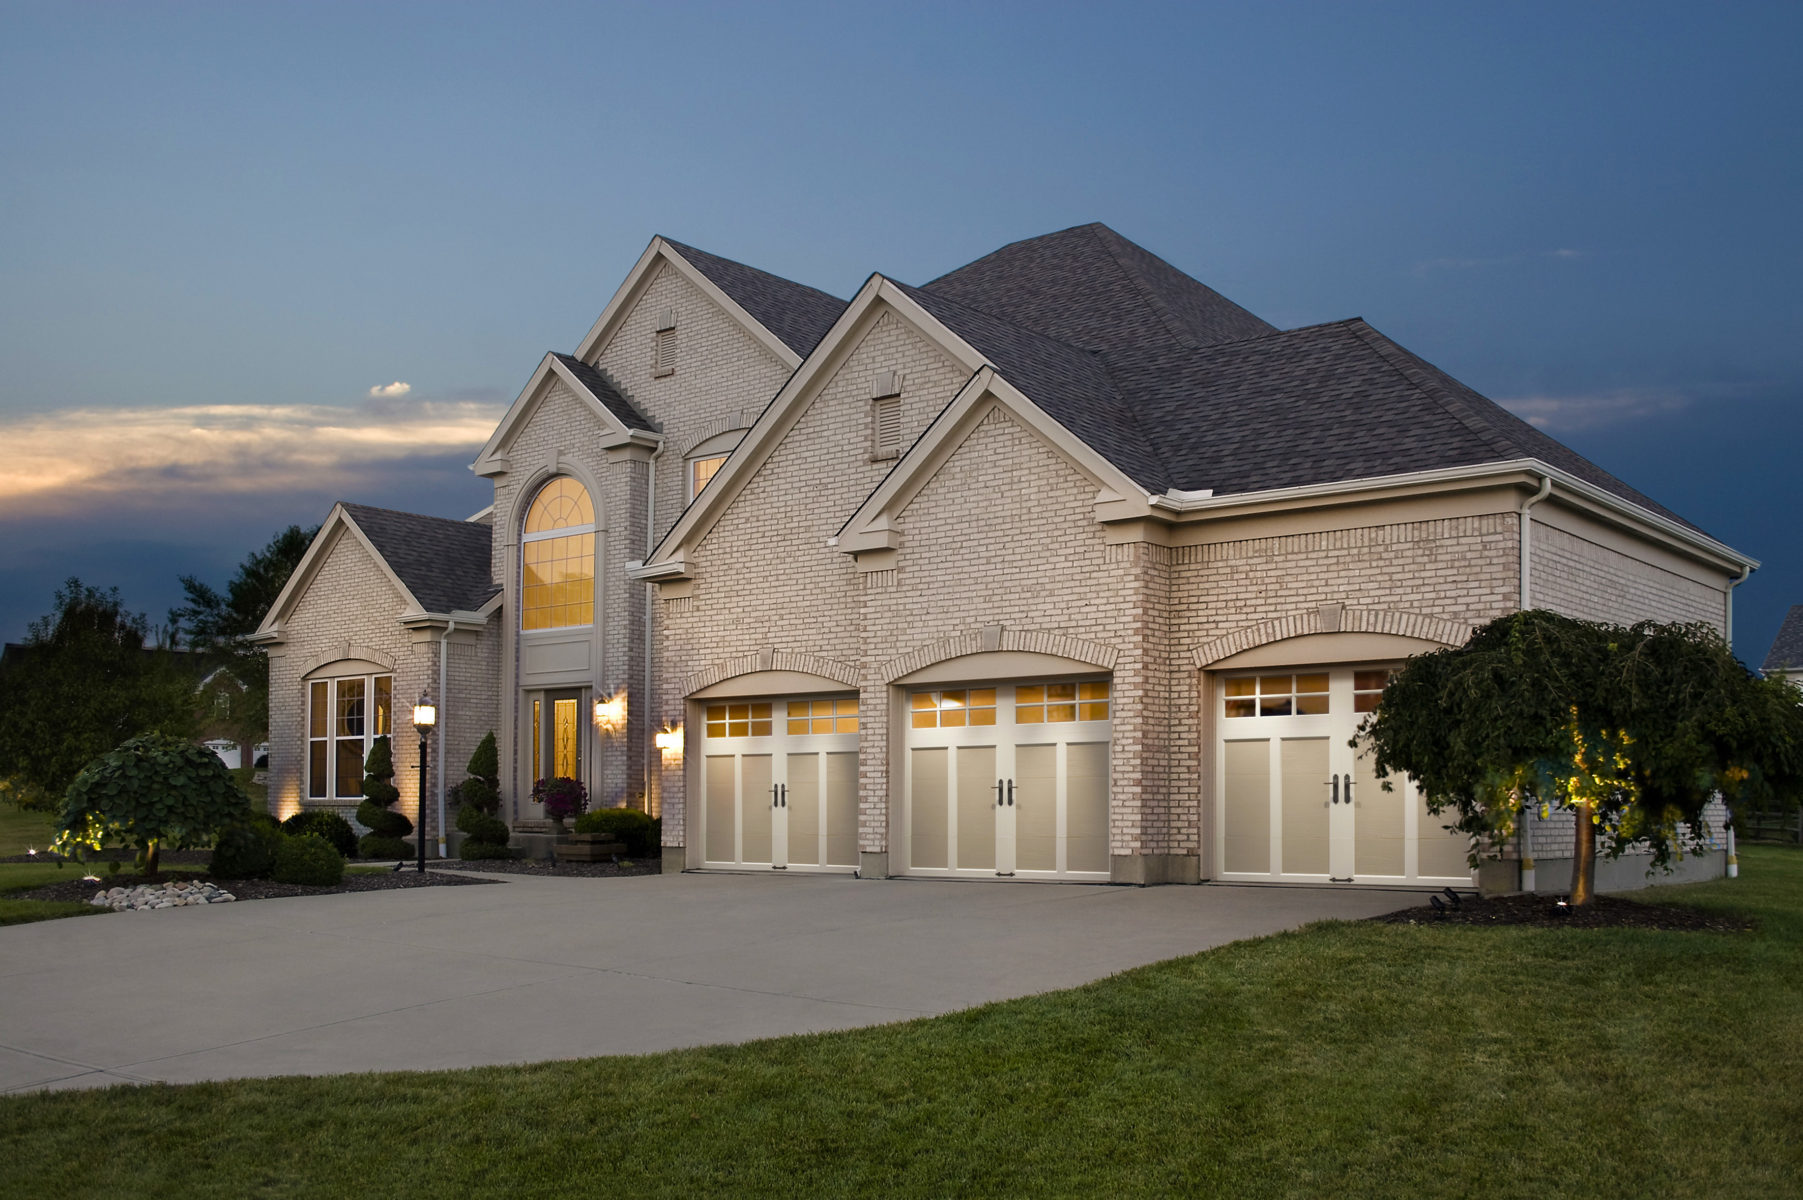 Beautiful Home With Clopay Residential Garage Doors